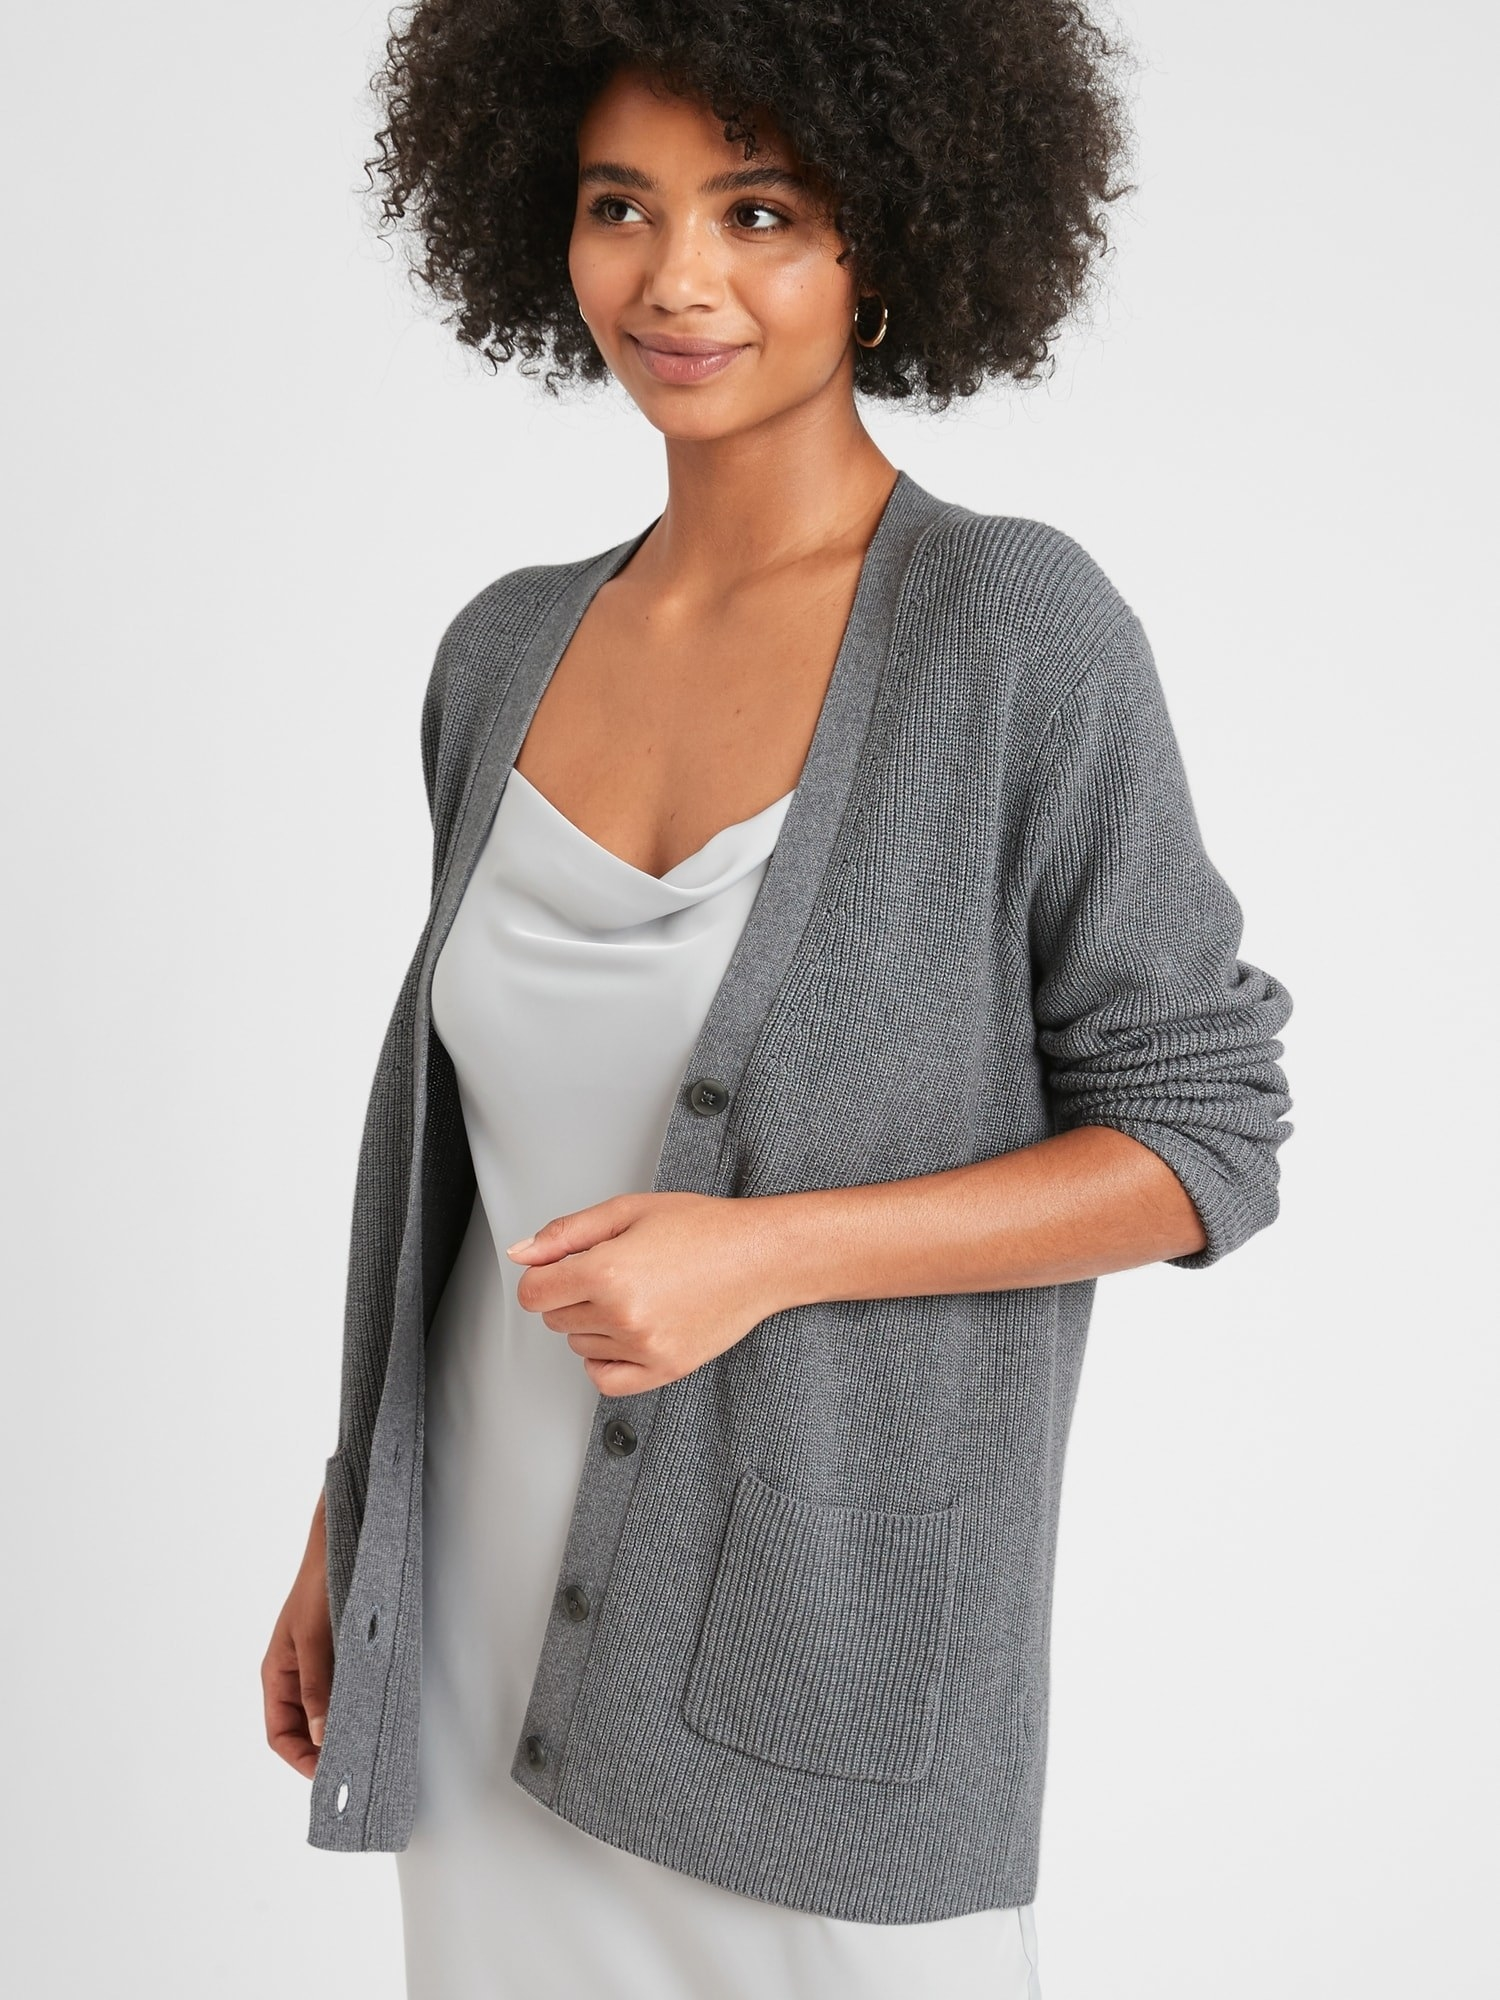 Model in the v-neck cardigan sweater with buttons and a ribbed texture in grey